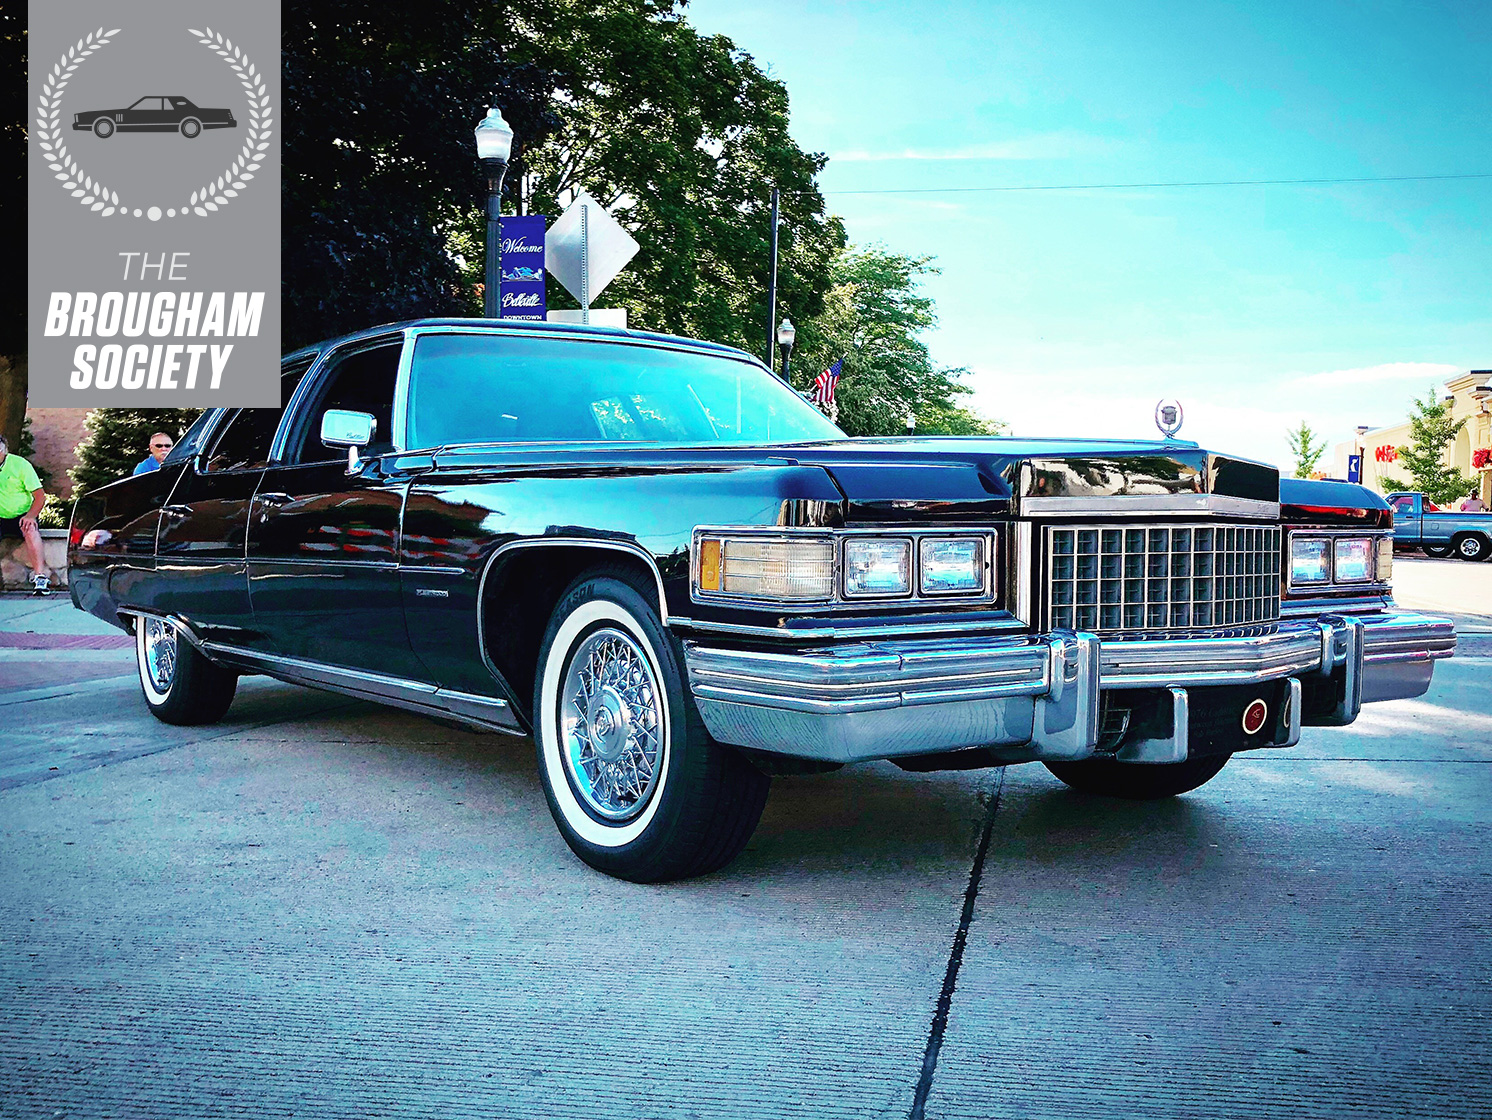 The Cadillac Fleetwood Talisman was king of the dinosaurs